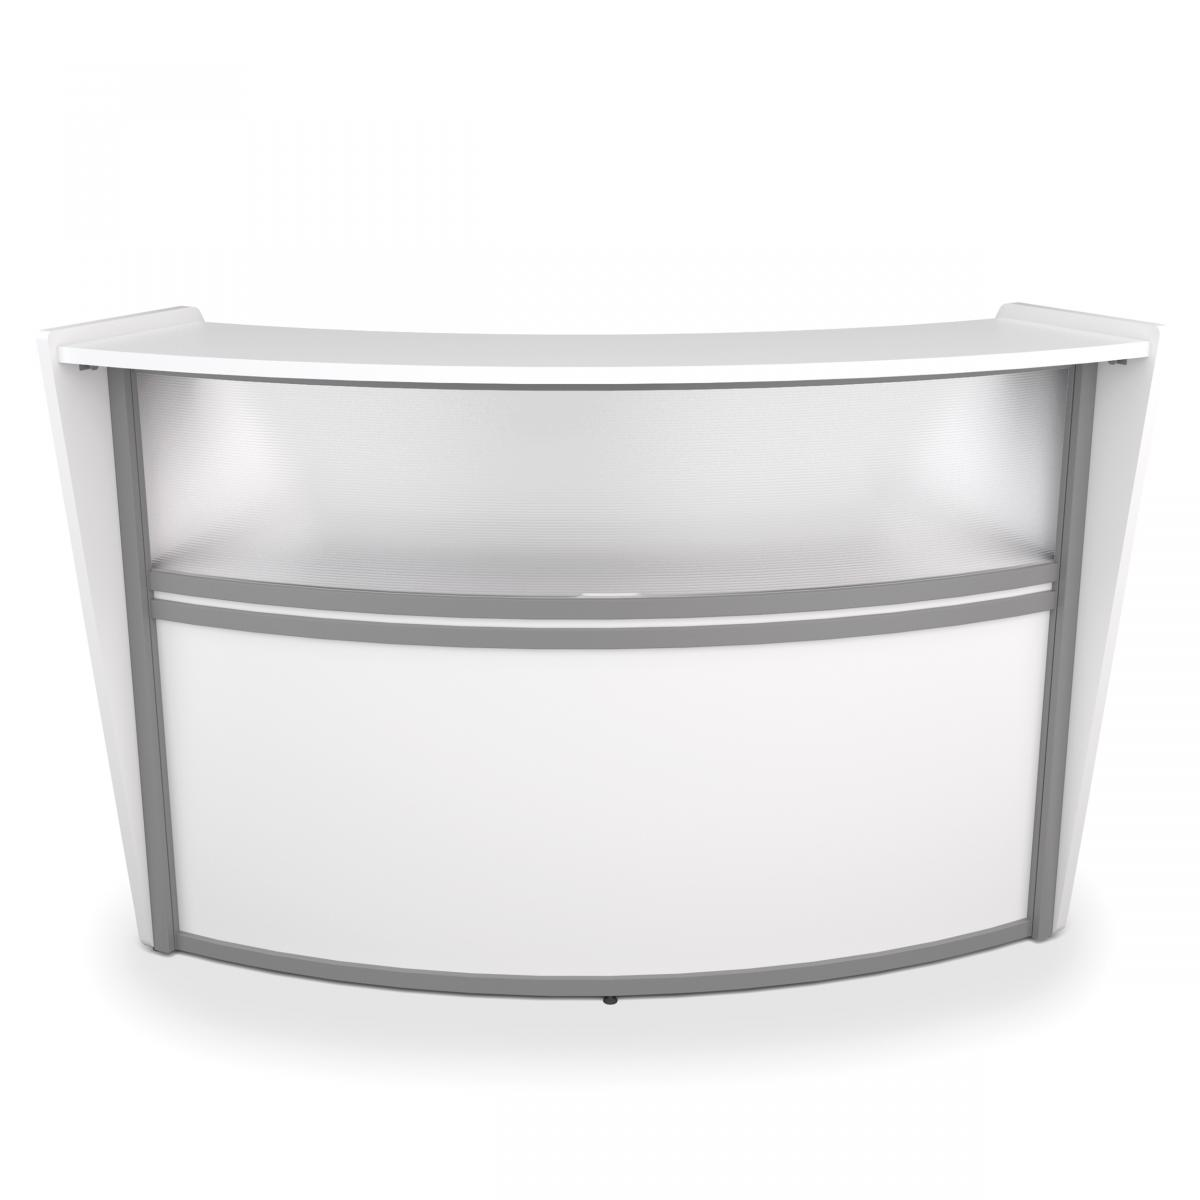 OFM Marque Plexi Single-Unit Reception Station